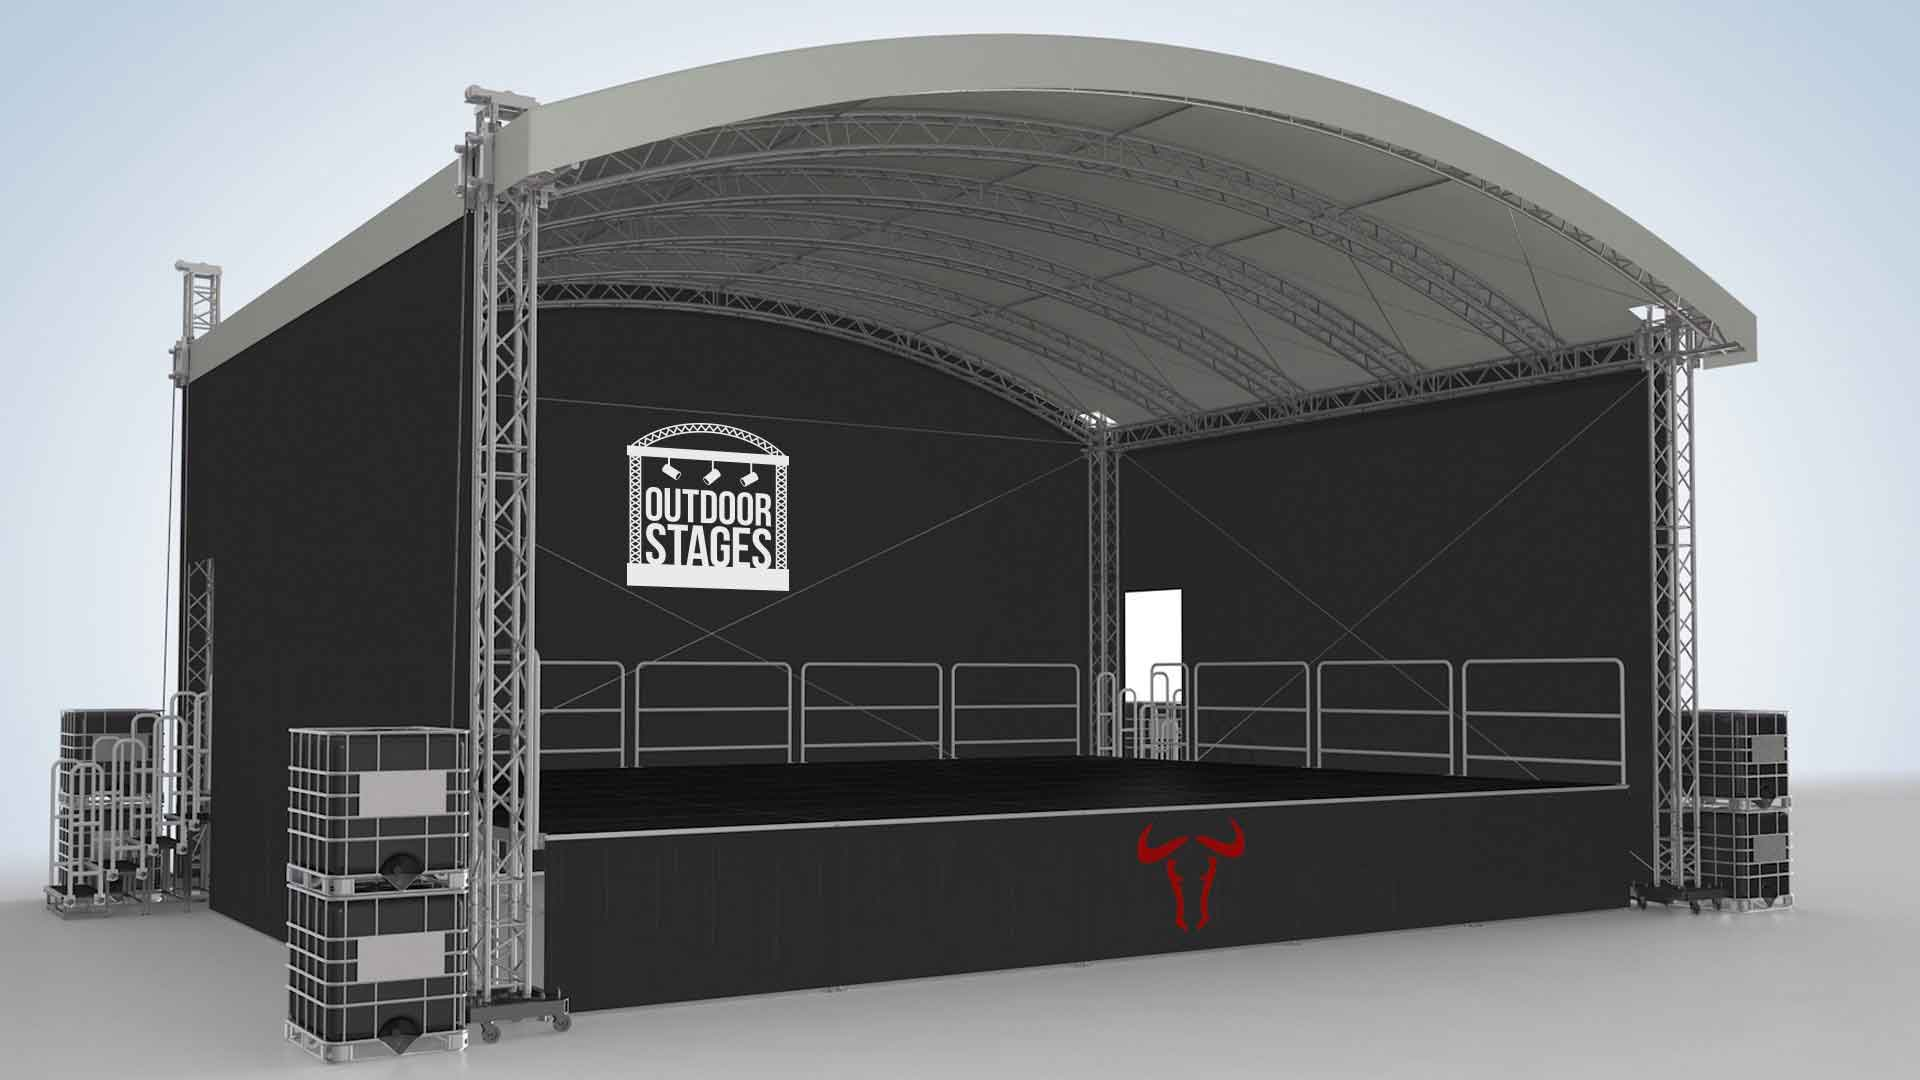 Outdoor Stages Festival Stage Hire Covered Staging